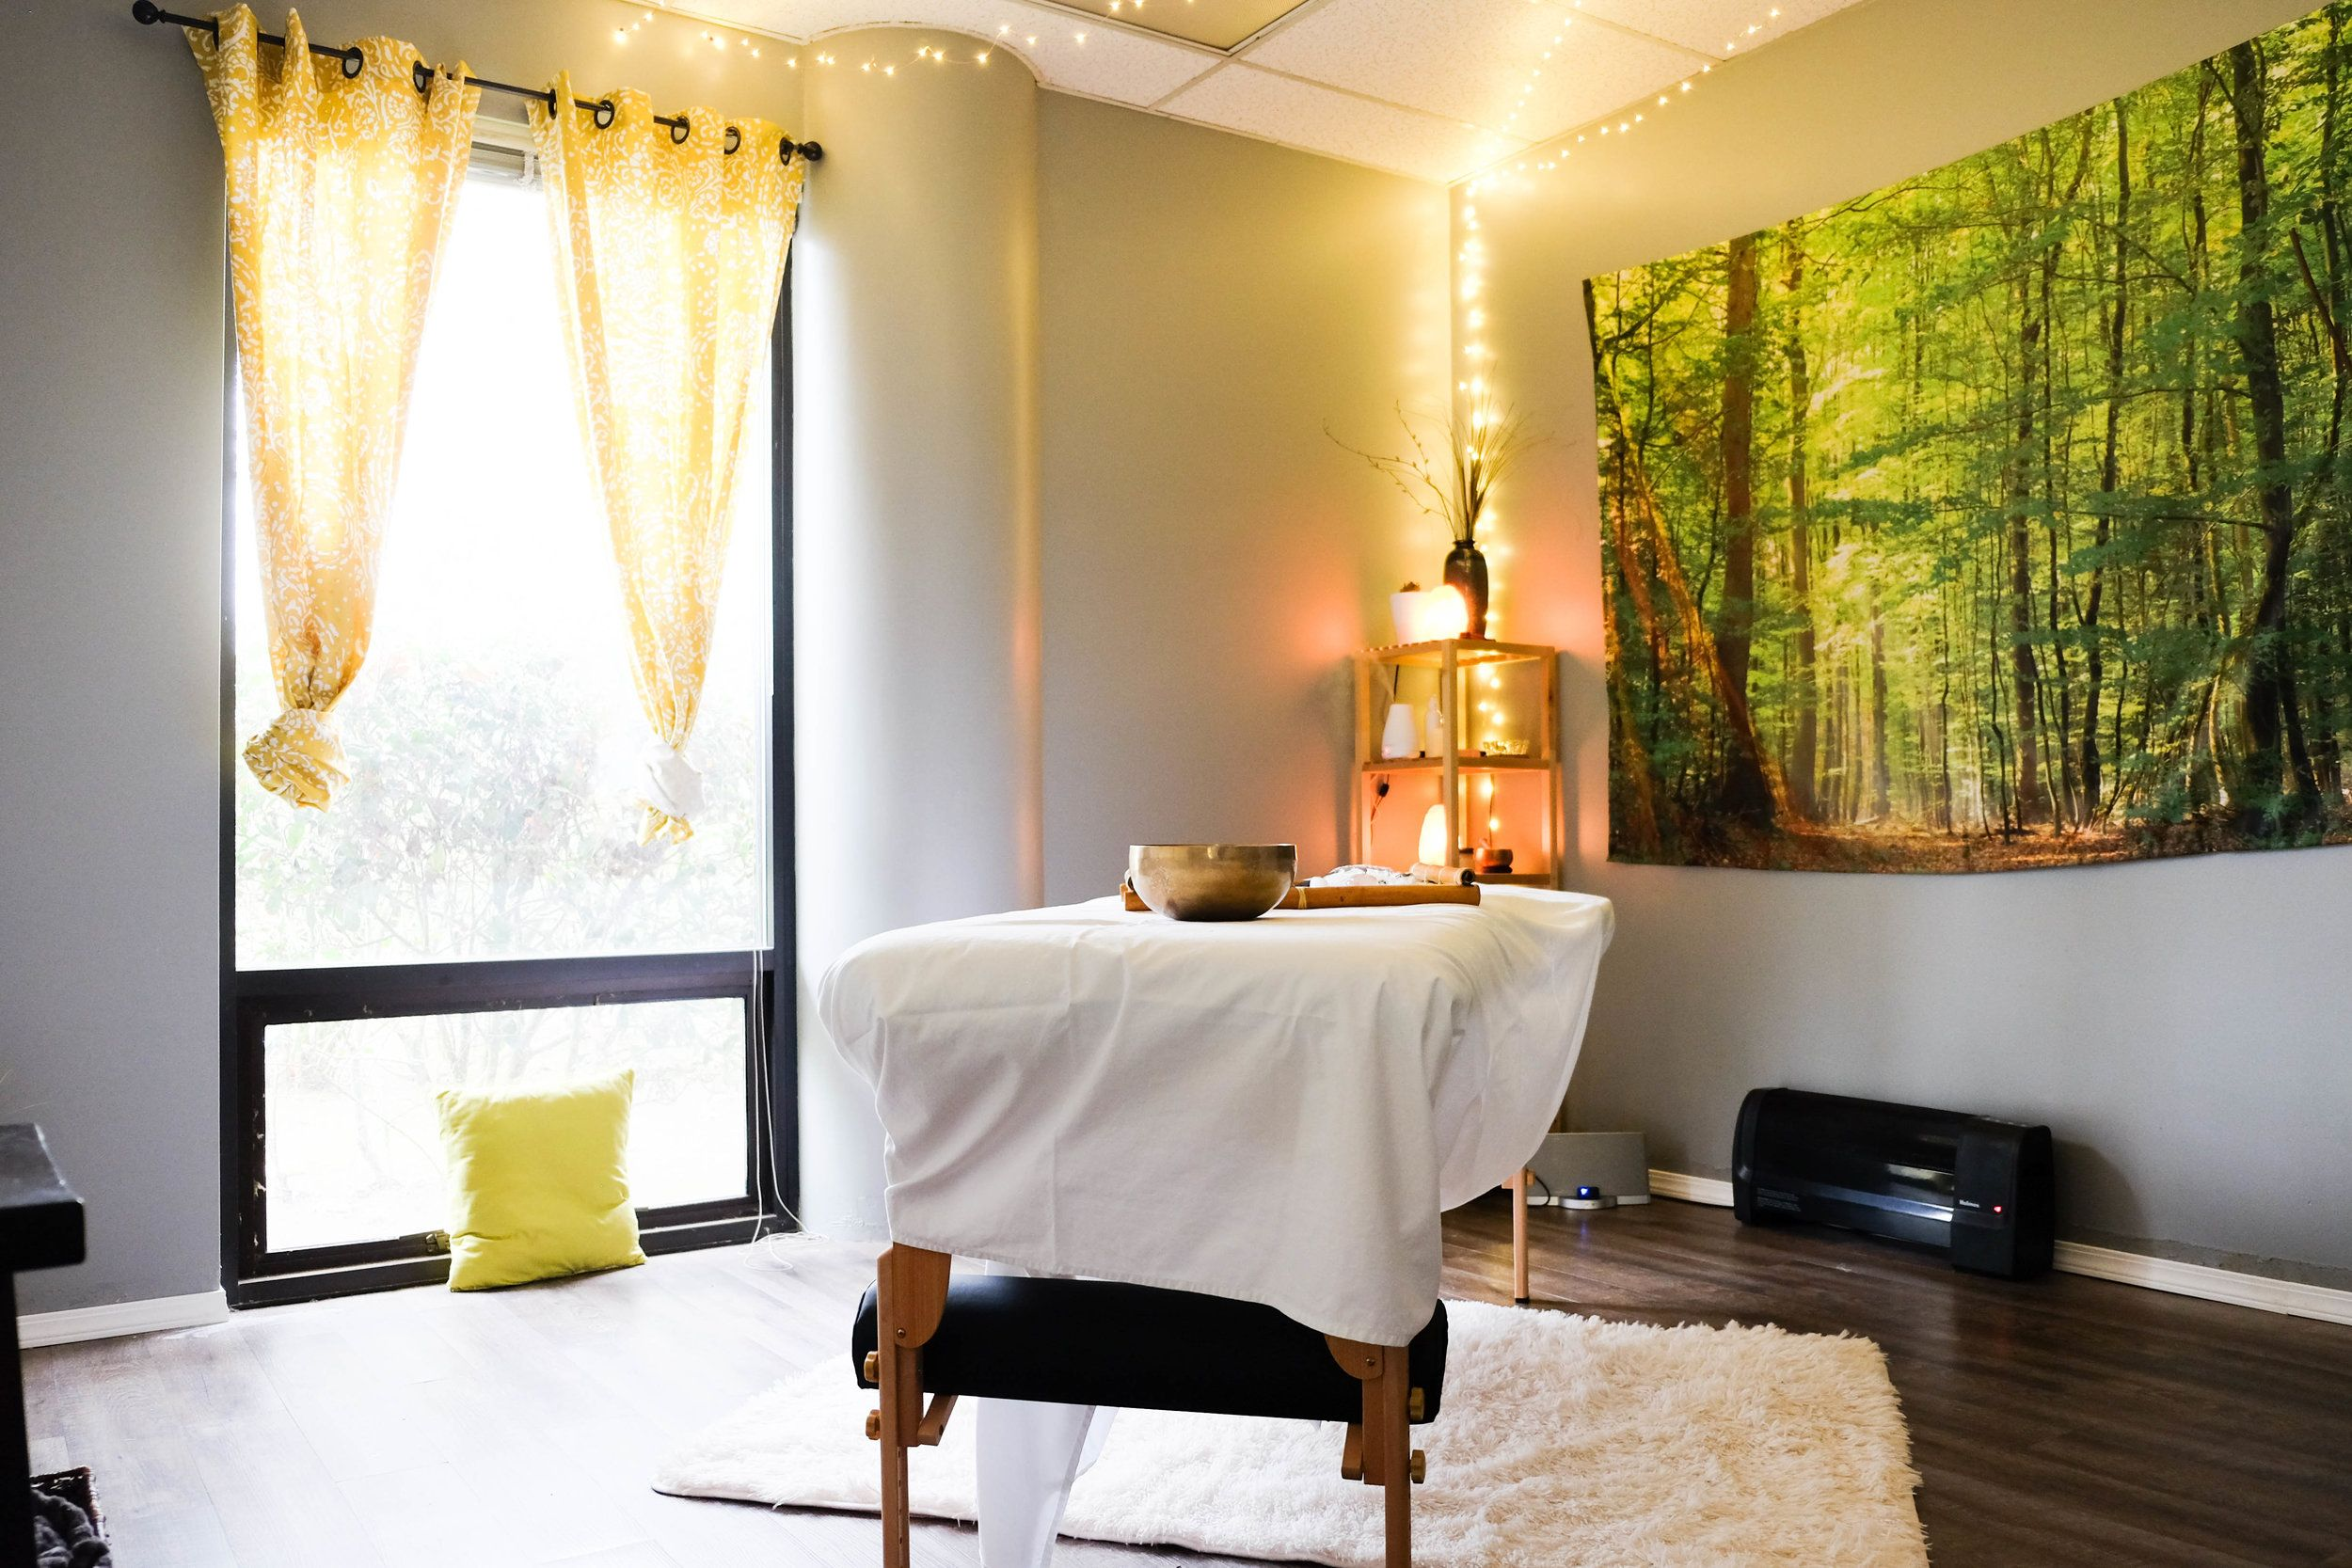 Reiki Healing Room Reiki Room Healing Room Healing Space